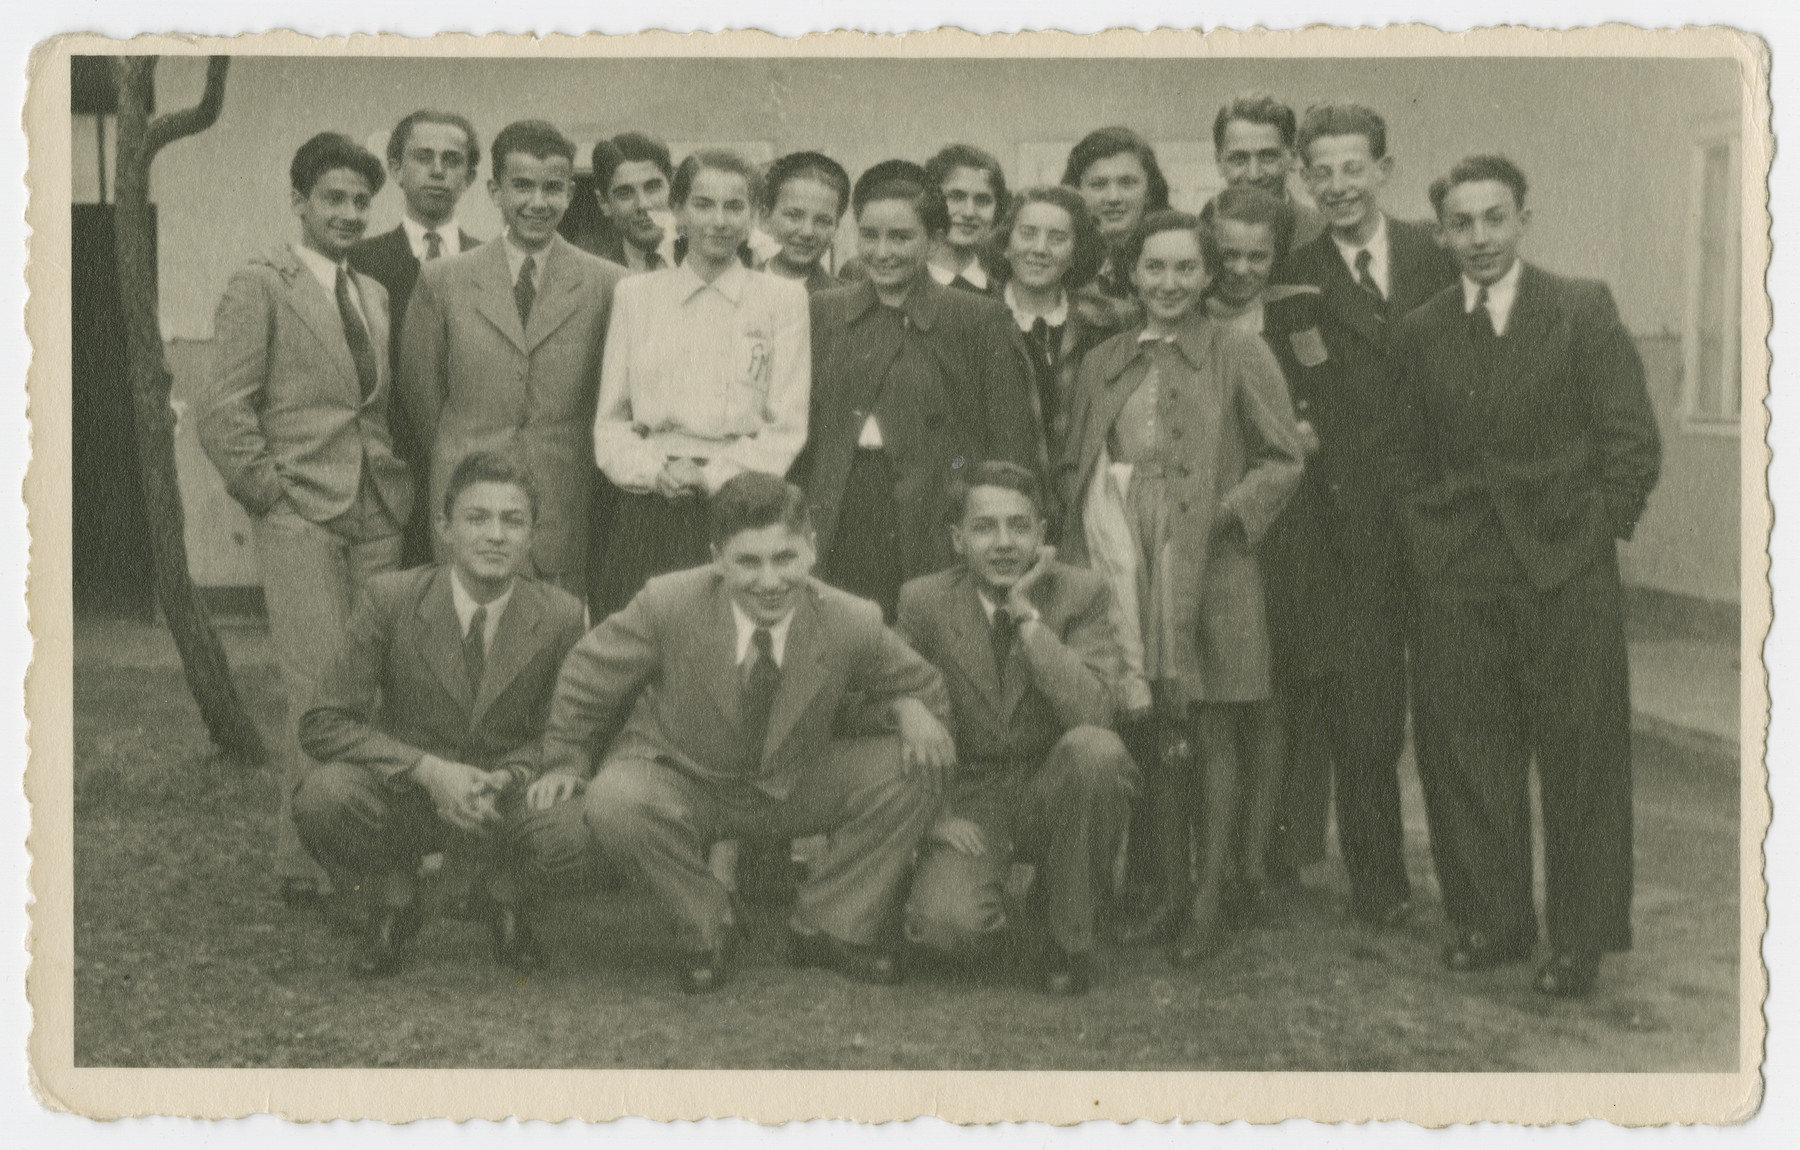 Group portrait of teenagers from the Jewish lyceum in Cluj taken shortly before the German occupation.  Edith Lovy is standing third from the right.